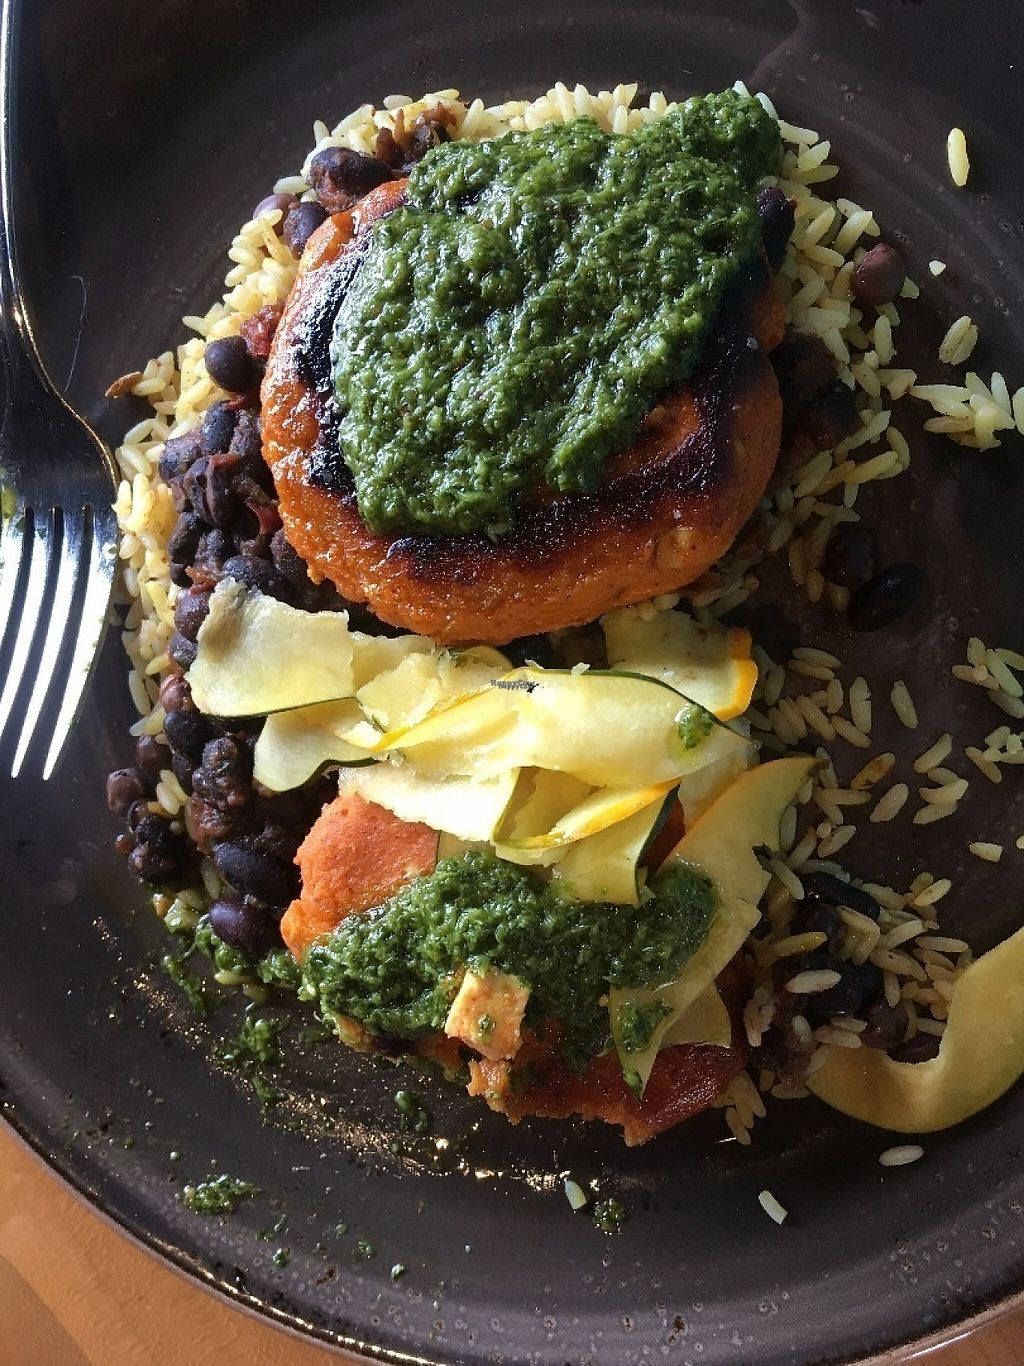 """Photo of Sunspot  by <a href=""""/members/profile/CColors"""">CColors</a> <br/>Sweet Potato Tofu Cakes.  Delicious! <br/> April 24, 2017  - <a href='/contact/abuse/image/3103/251864'>Report</a>"""